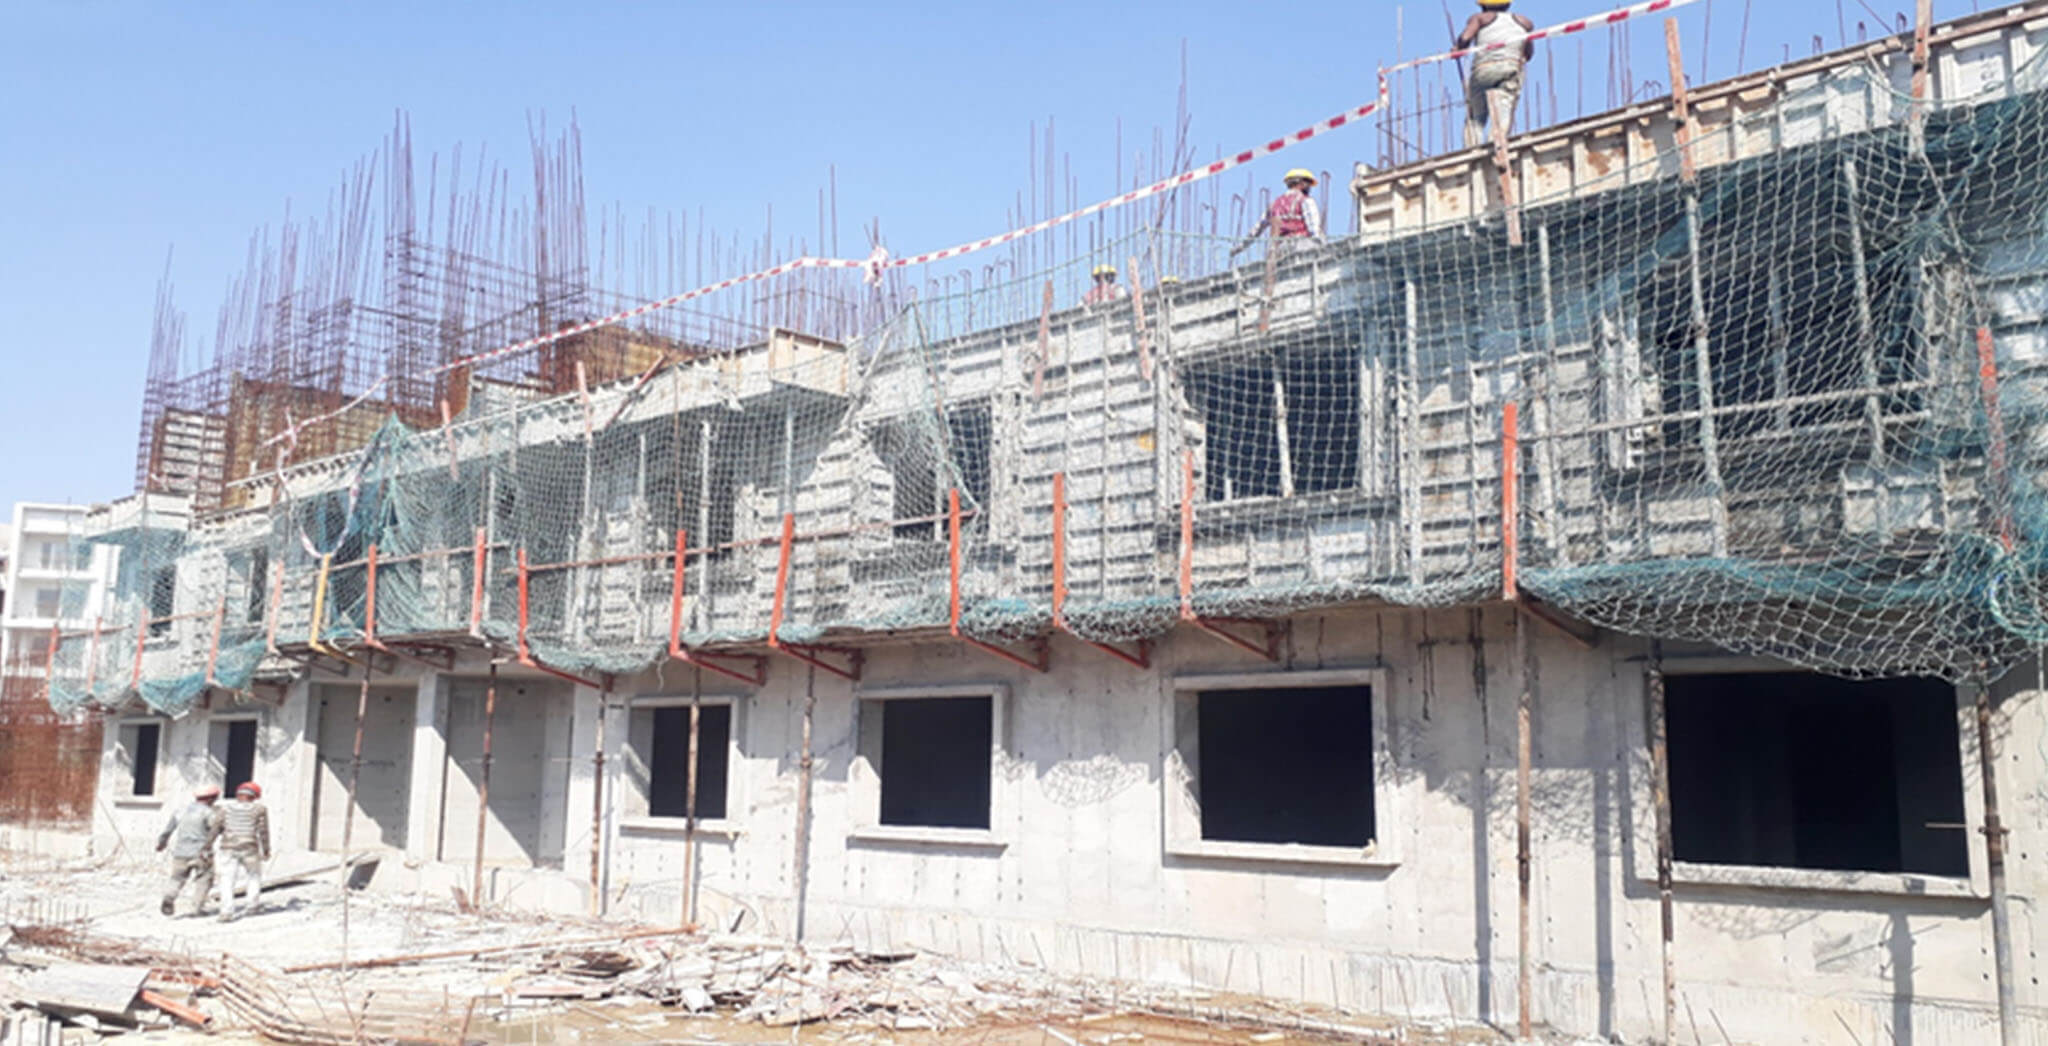 Mar 2021 - I Block: On casting of second floor slab, 1st March 2021